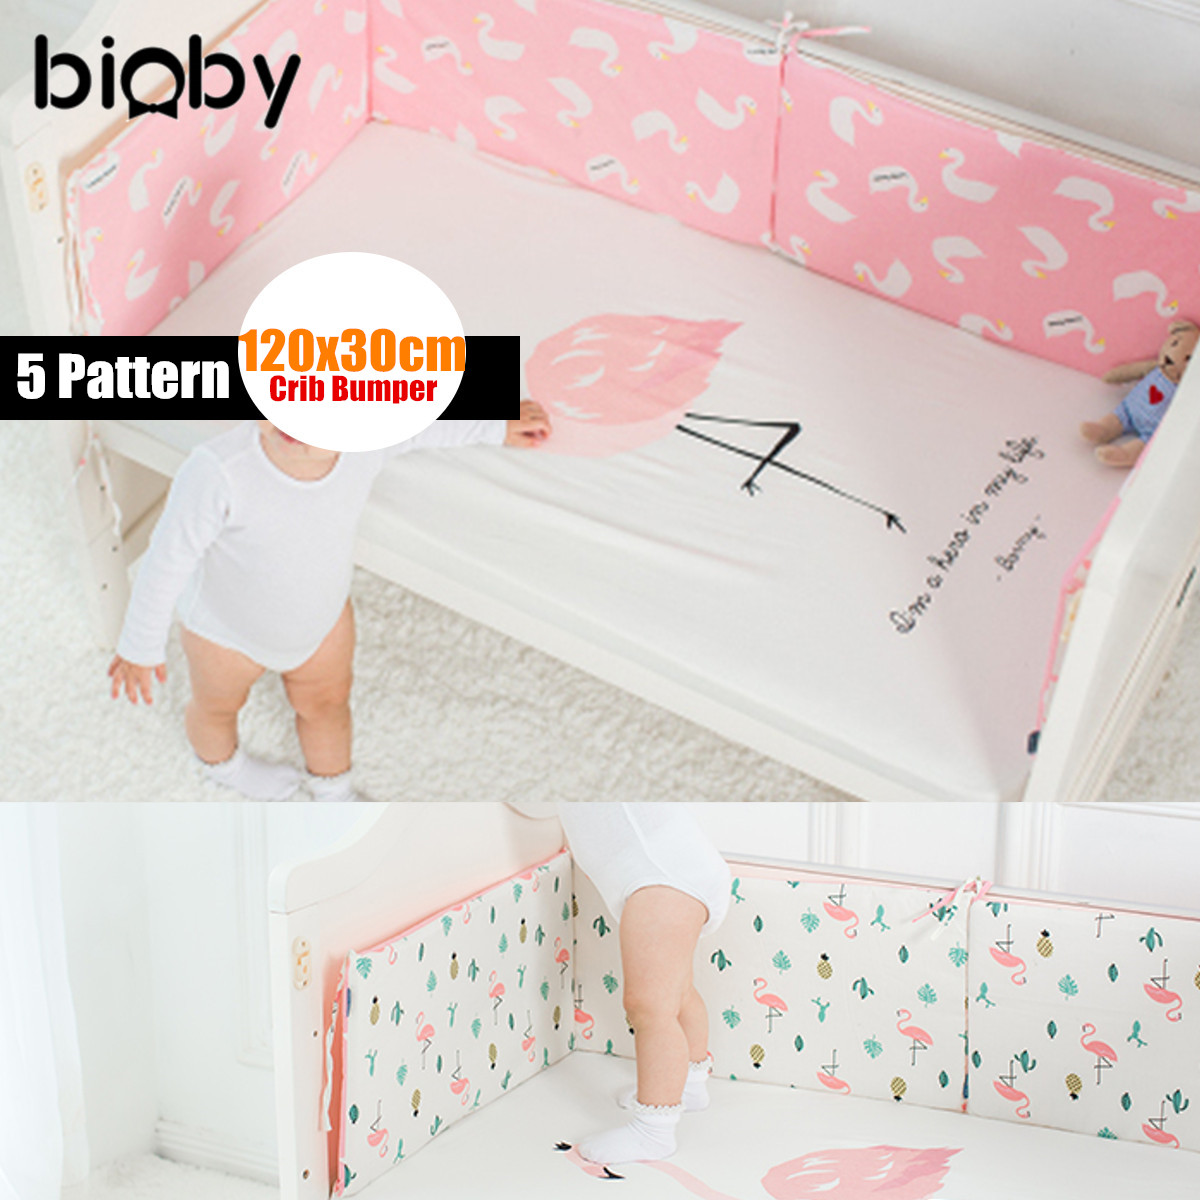 5 Type Infant Baby Toddler Crib Bumper Bed Protector Cushion Pad Nursery Bedding 120x30cm